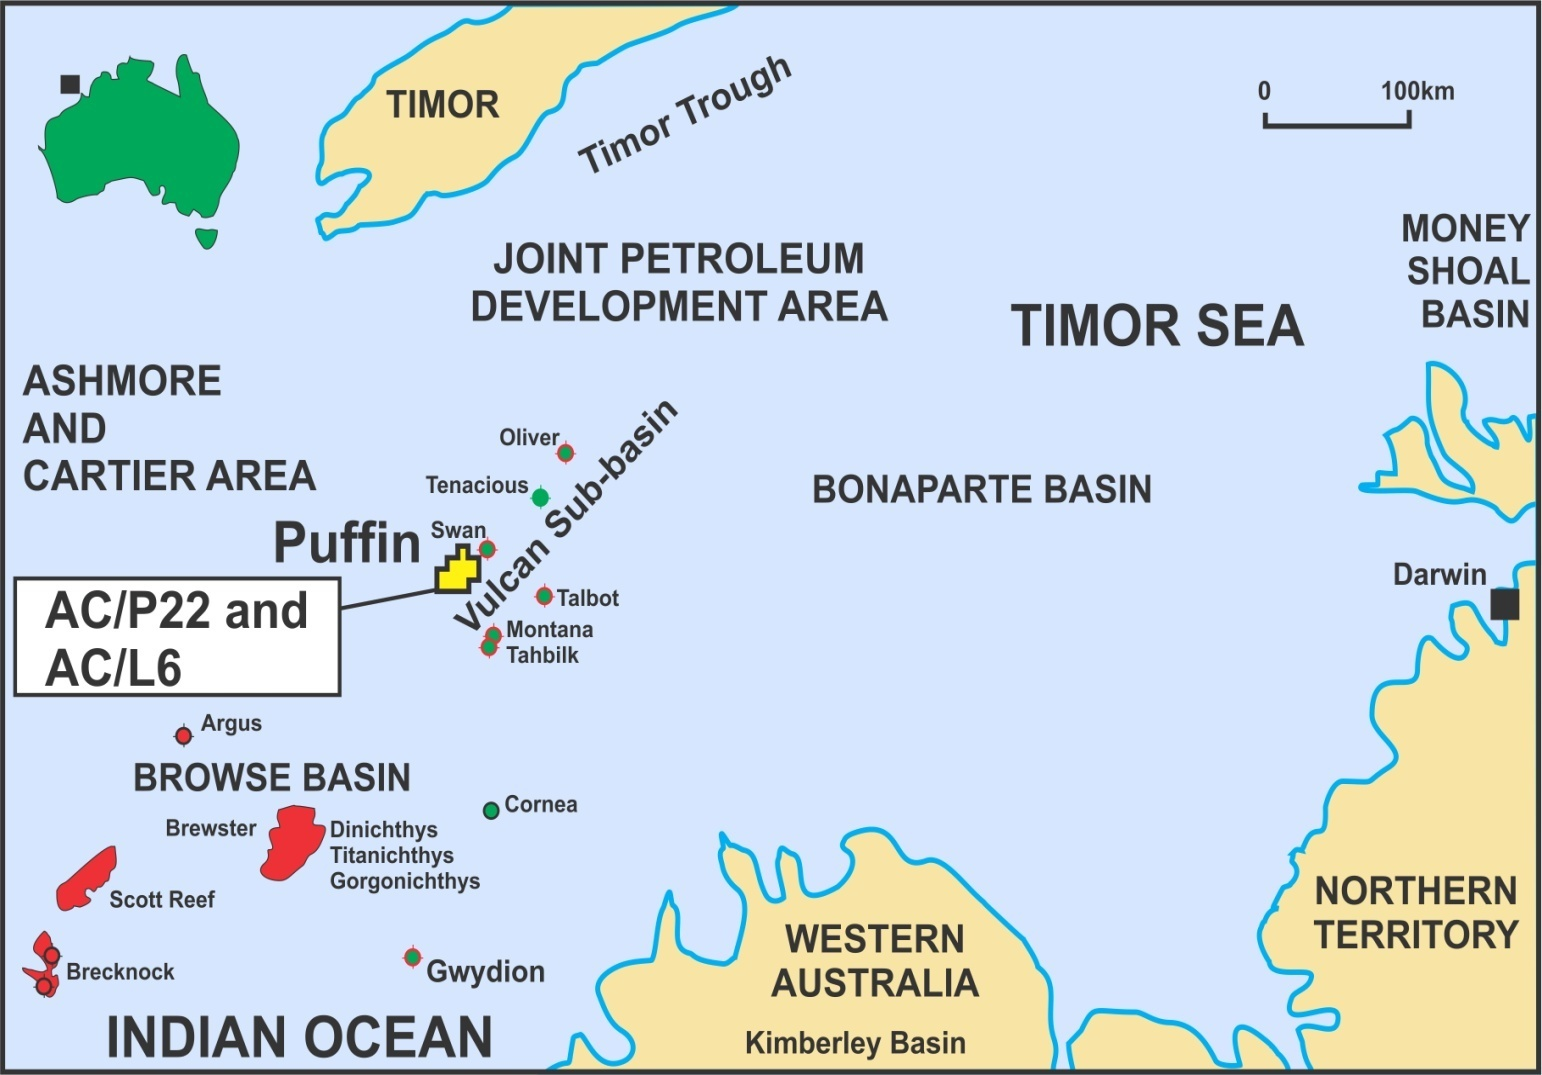 Figure 1. Puffin Field location